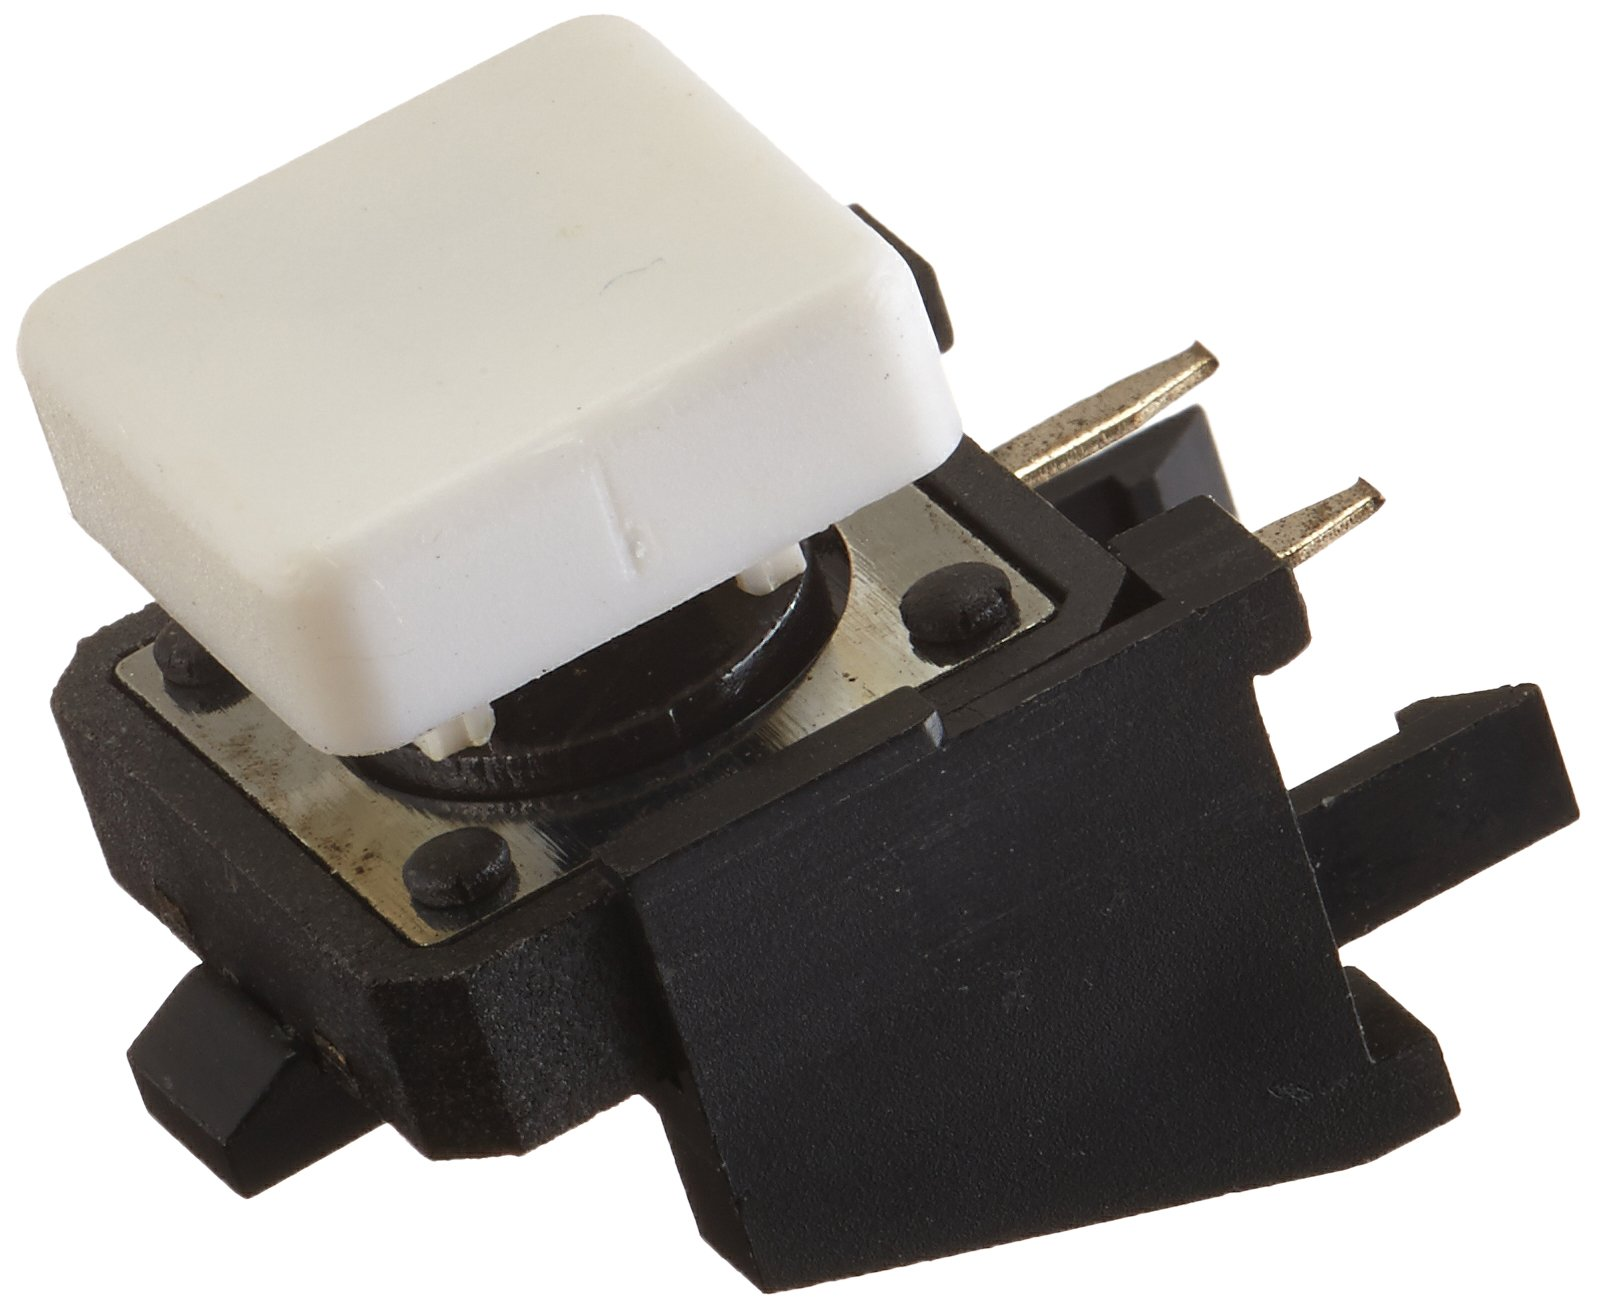 Uxcell Square Cap Right Angle Momentary Tactile/Tact/Push Button Switch